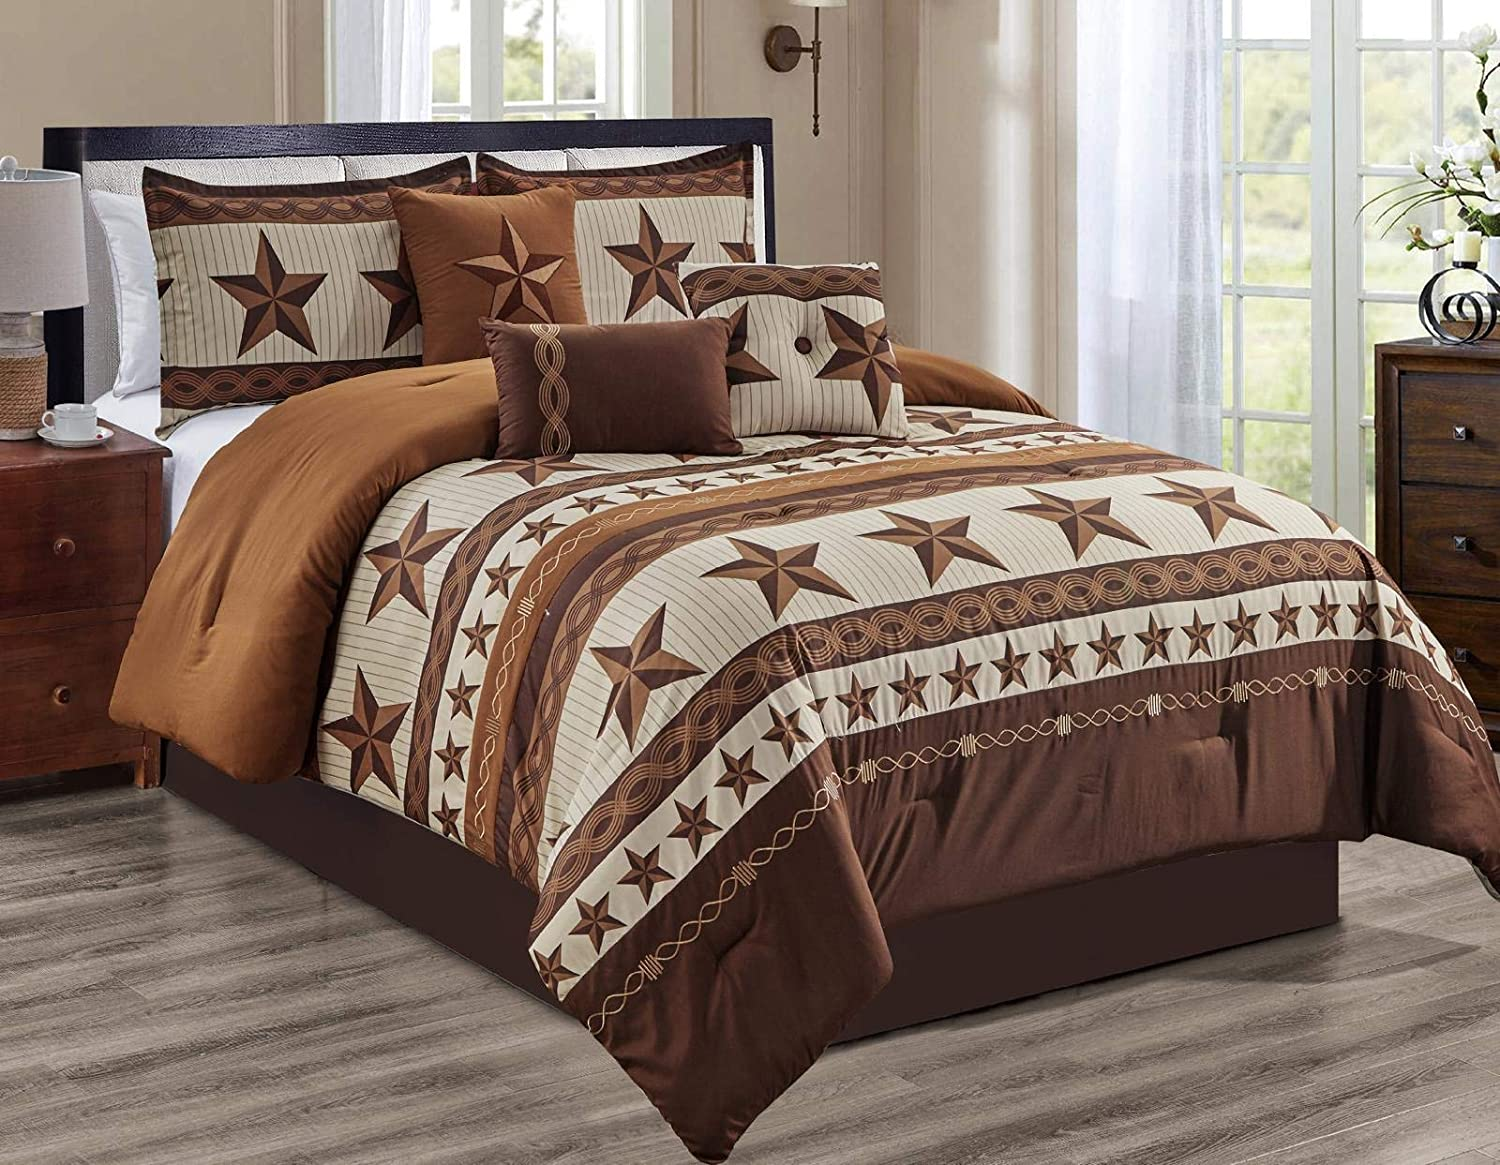 Luxury South Western Pattern Barbed Wire Rustic Brown Star Comforter Set - 7 Piece Set (Queen)